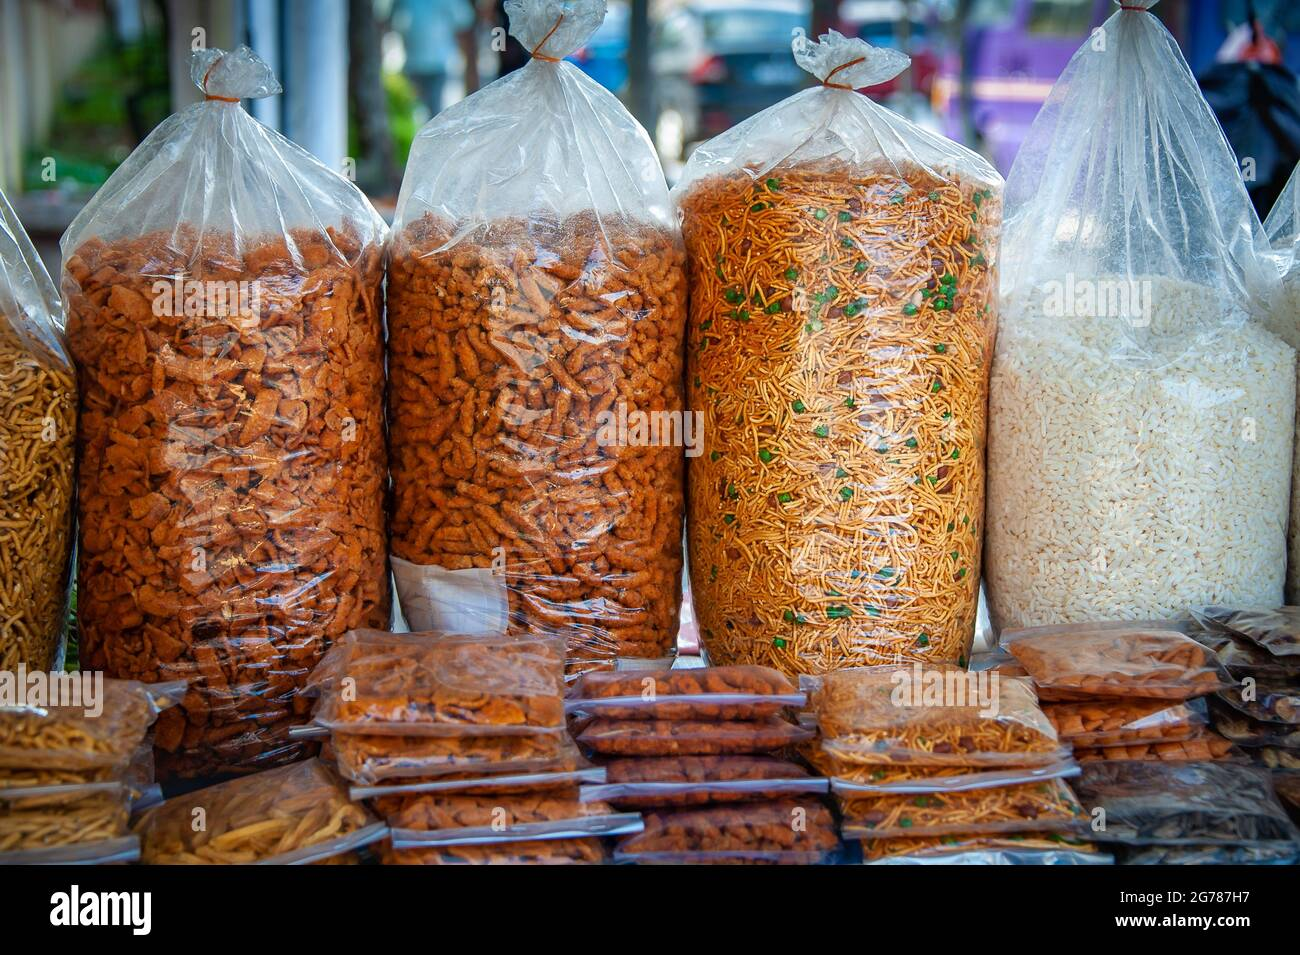 Savoury crackers on display in a street market, Traditional oriental snack mix served as an appetiser or an accompaniment to drinks Stock Photo